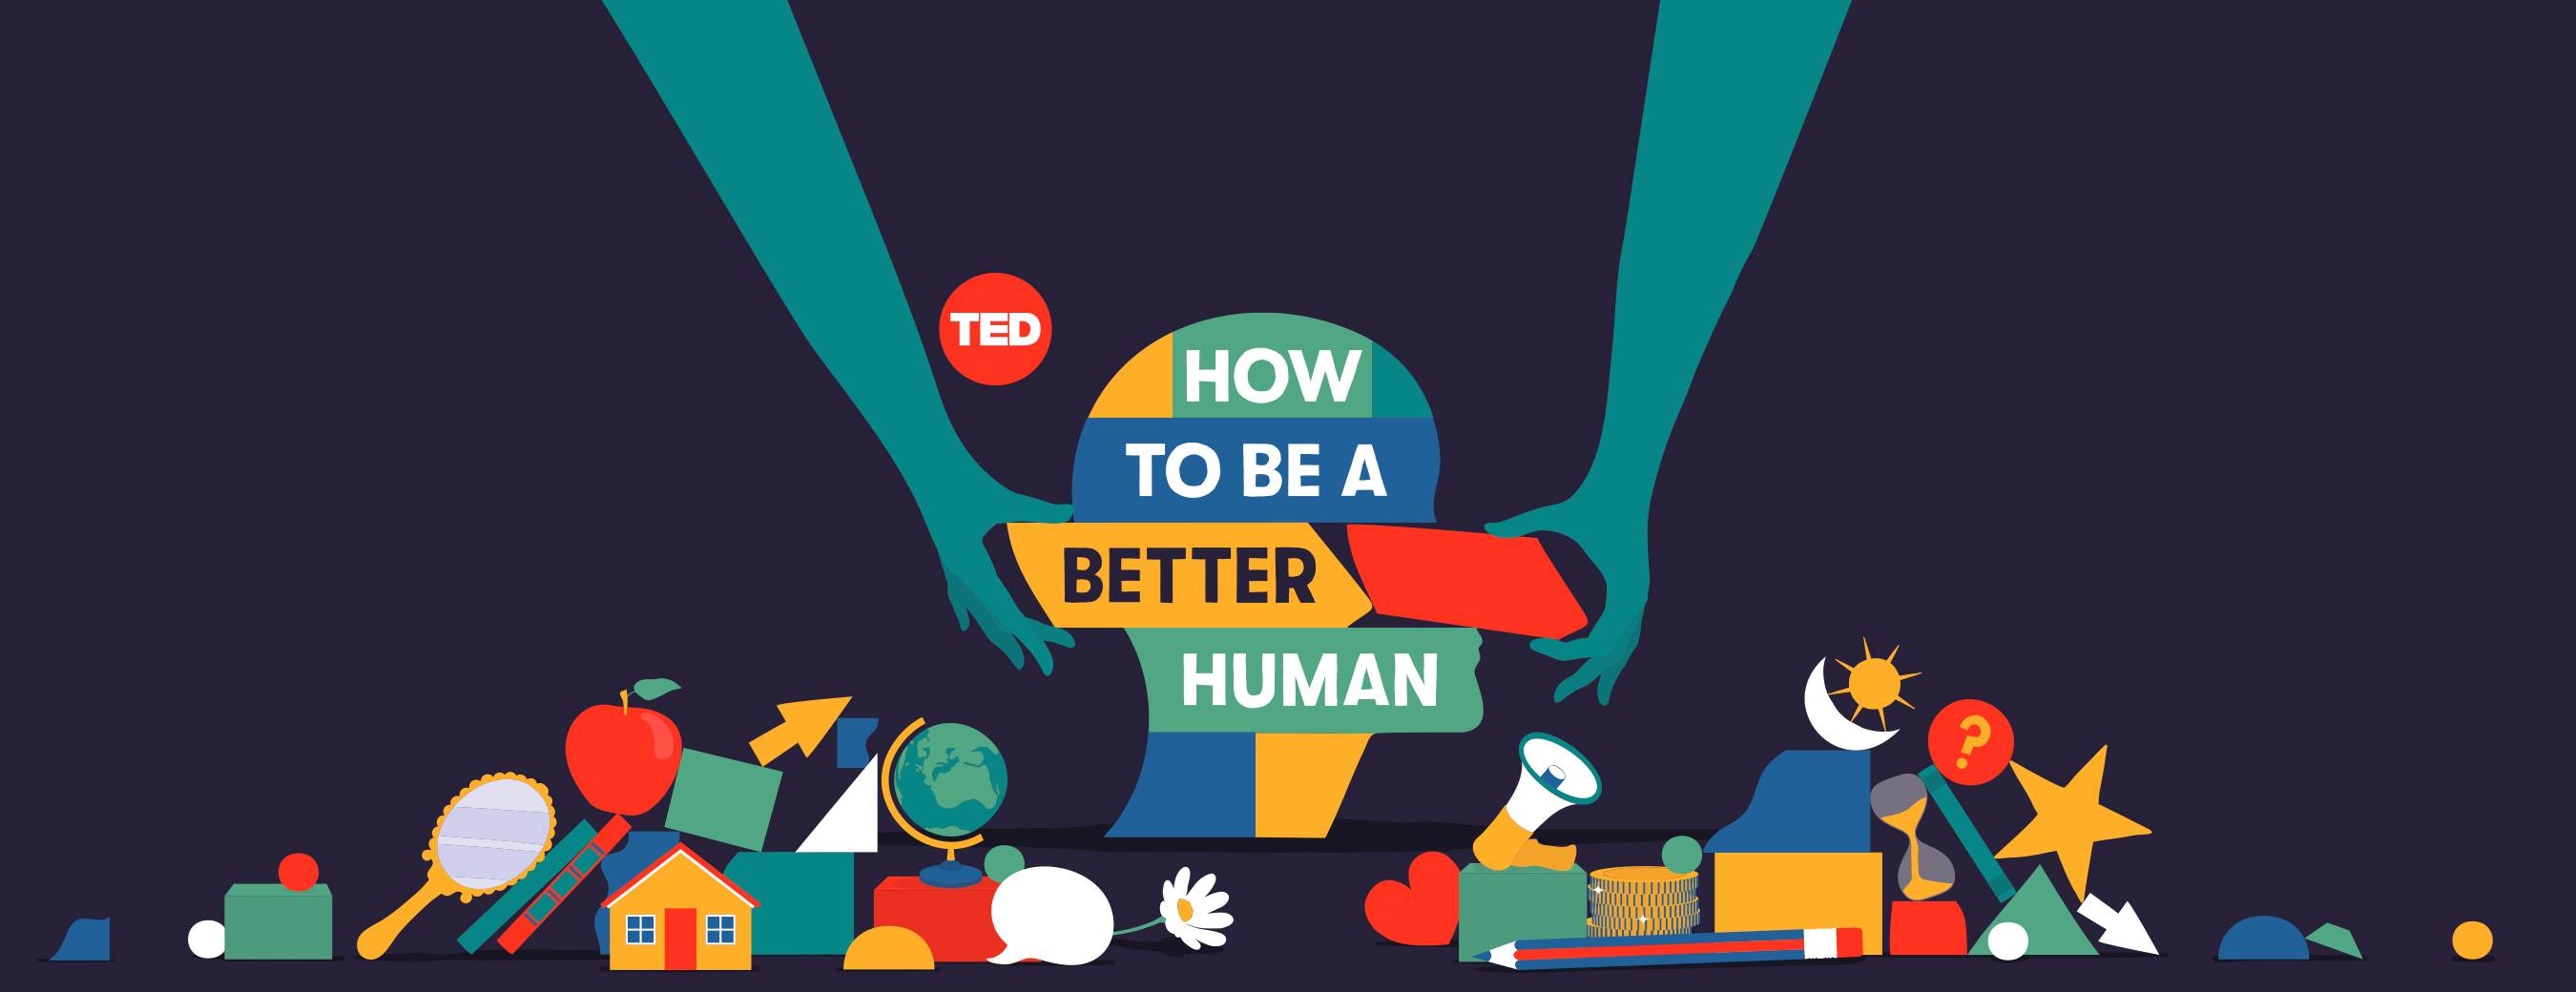 """TED launches """"How to Be a Better Human,"""" a new original podcast hosted by Chris Duffy 